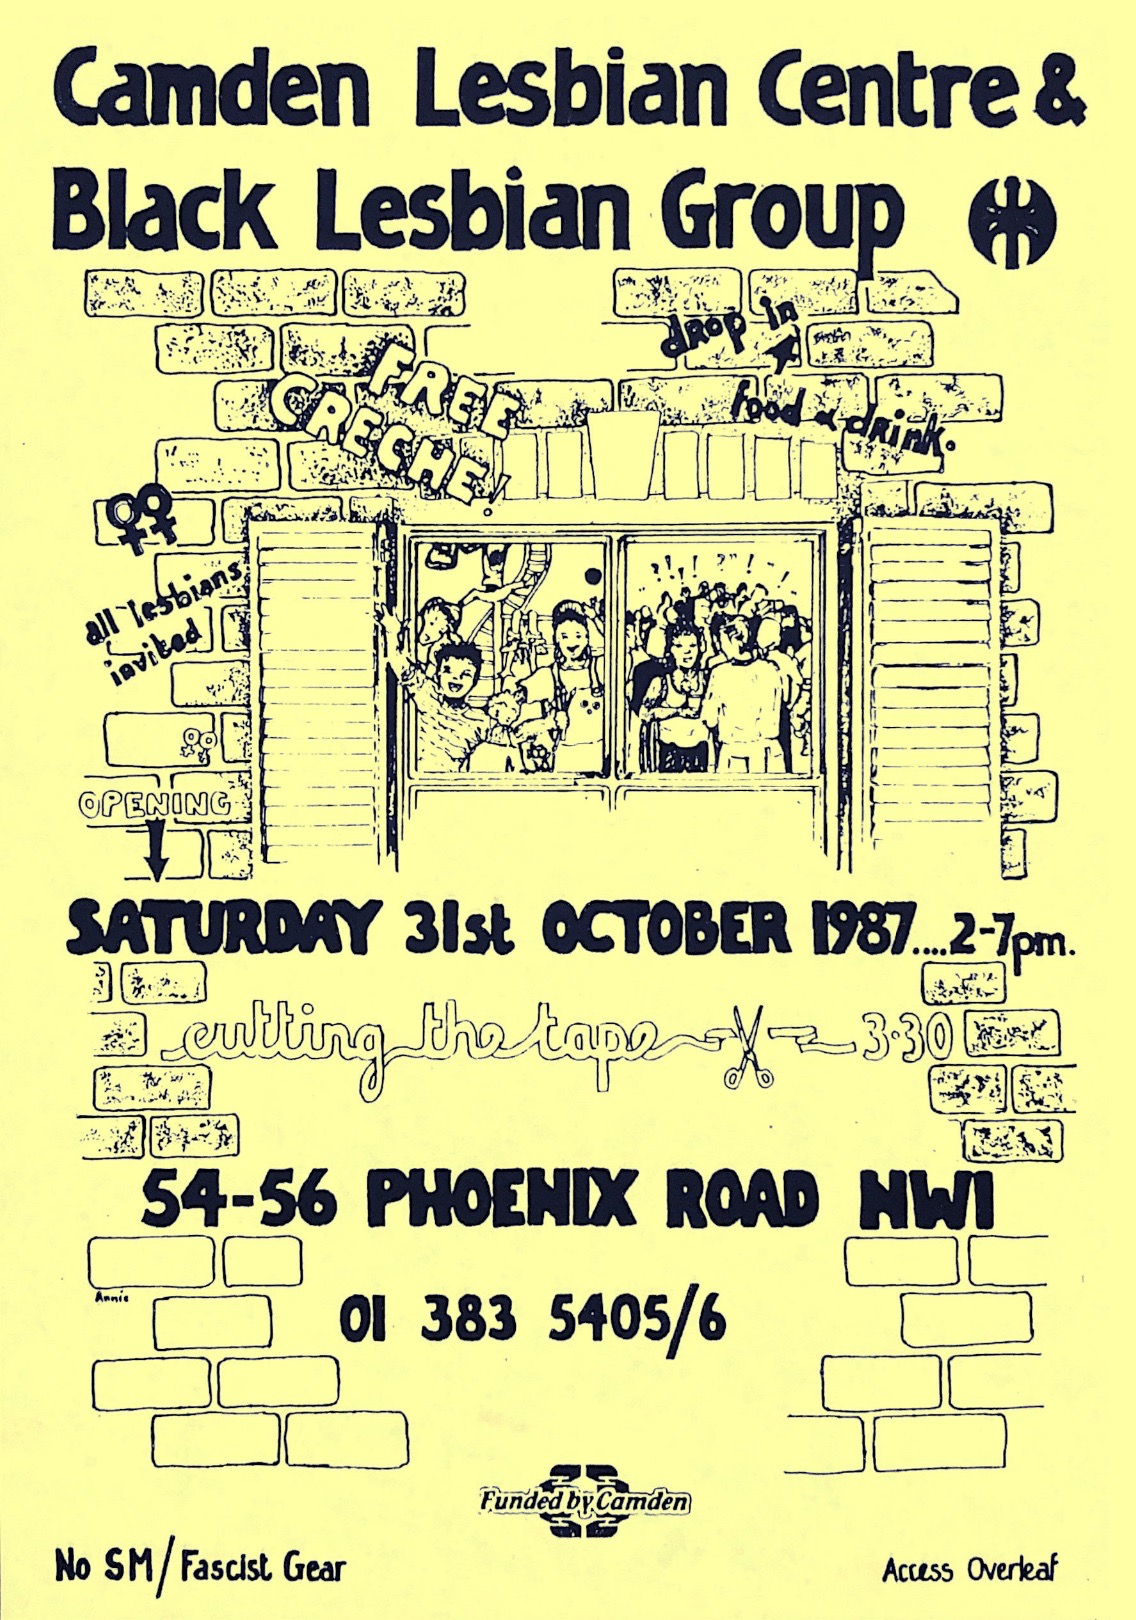 Poster for the ribbon-cutting ceremony and opening day of CLC&BLG, featuring the group's name and a labrys in bold black at the top centre. Below it, an illustration of a group of people partying and celebrating, drawn through a window looking in. Graffiti around the windowframe includes 'drop in 4 food + drink', 'free creche!' and 'All lesbians invited'. The event is scheduled for 2-7pm, Saturday 31 October 1987.